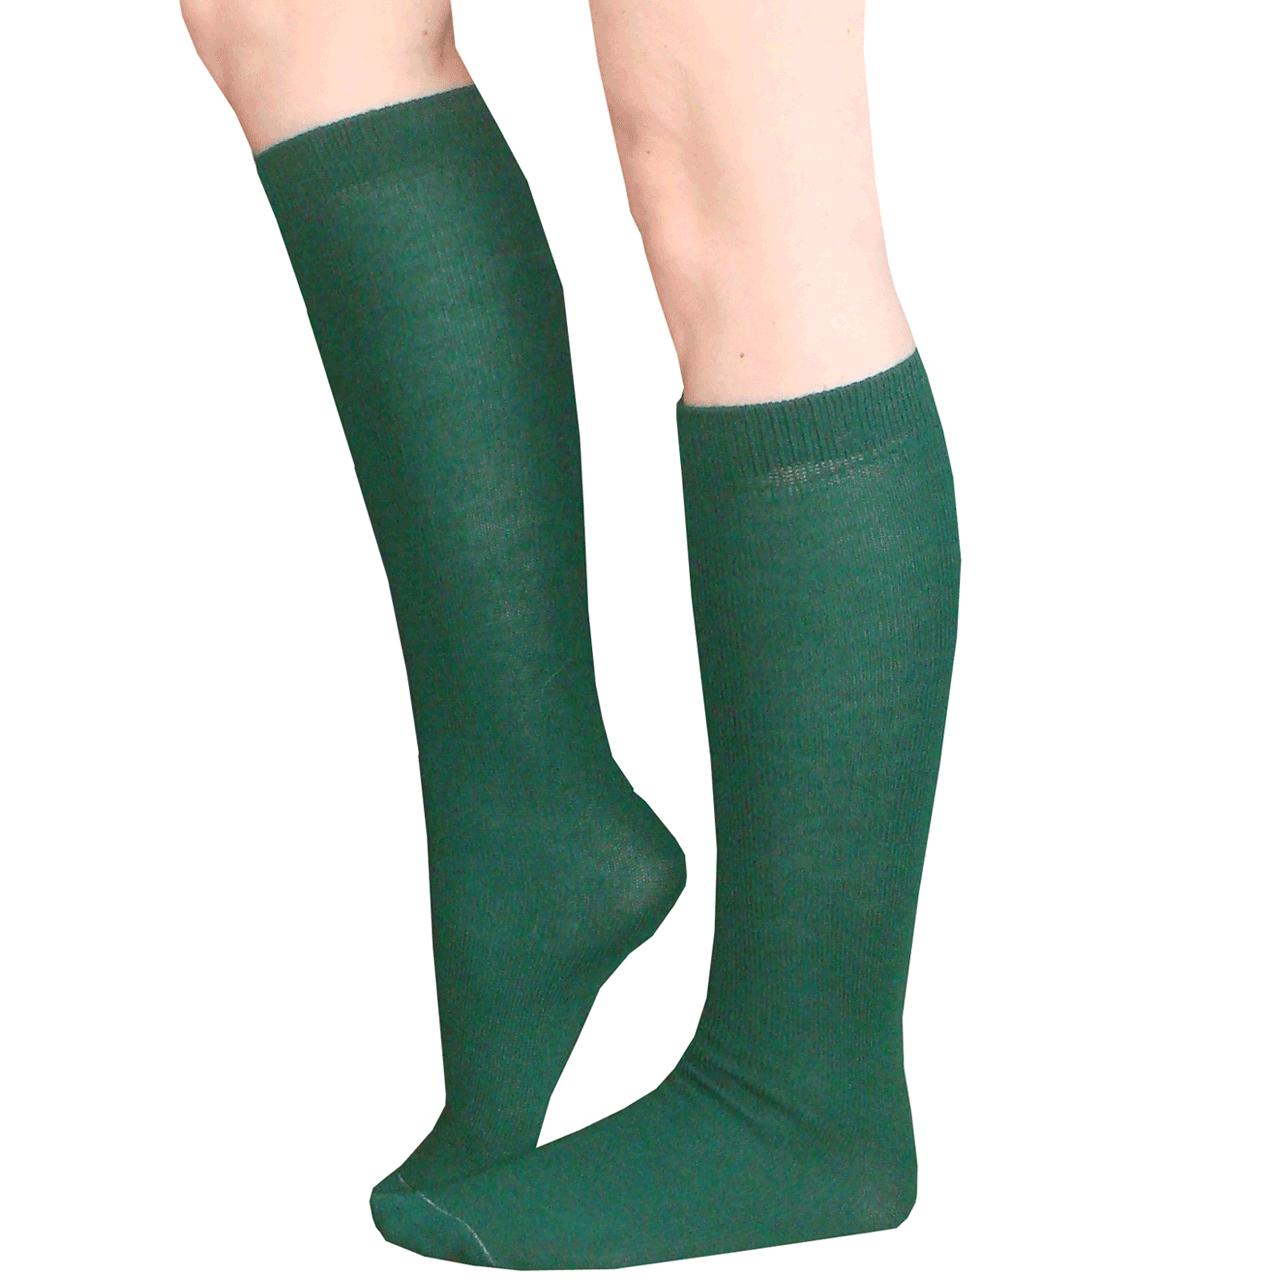 thin dark green knee highs